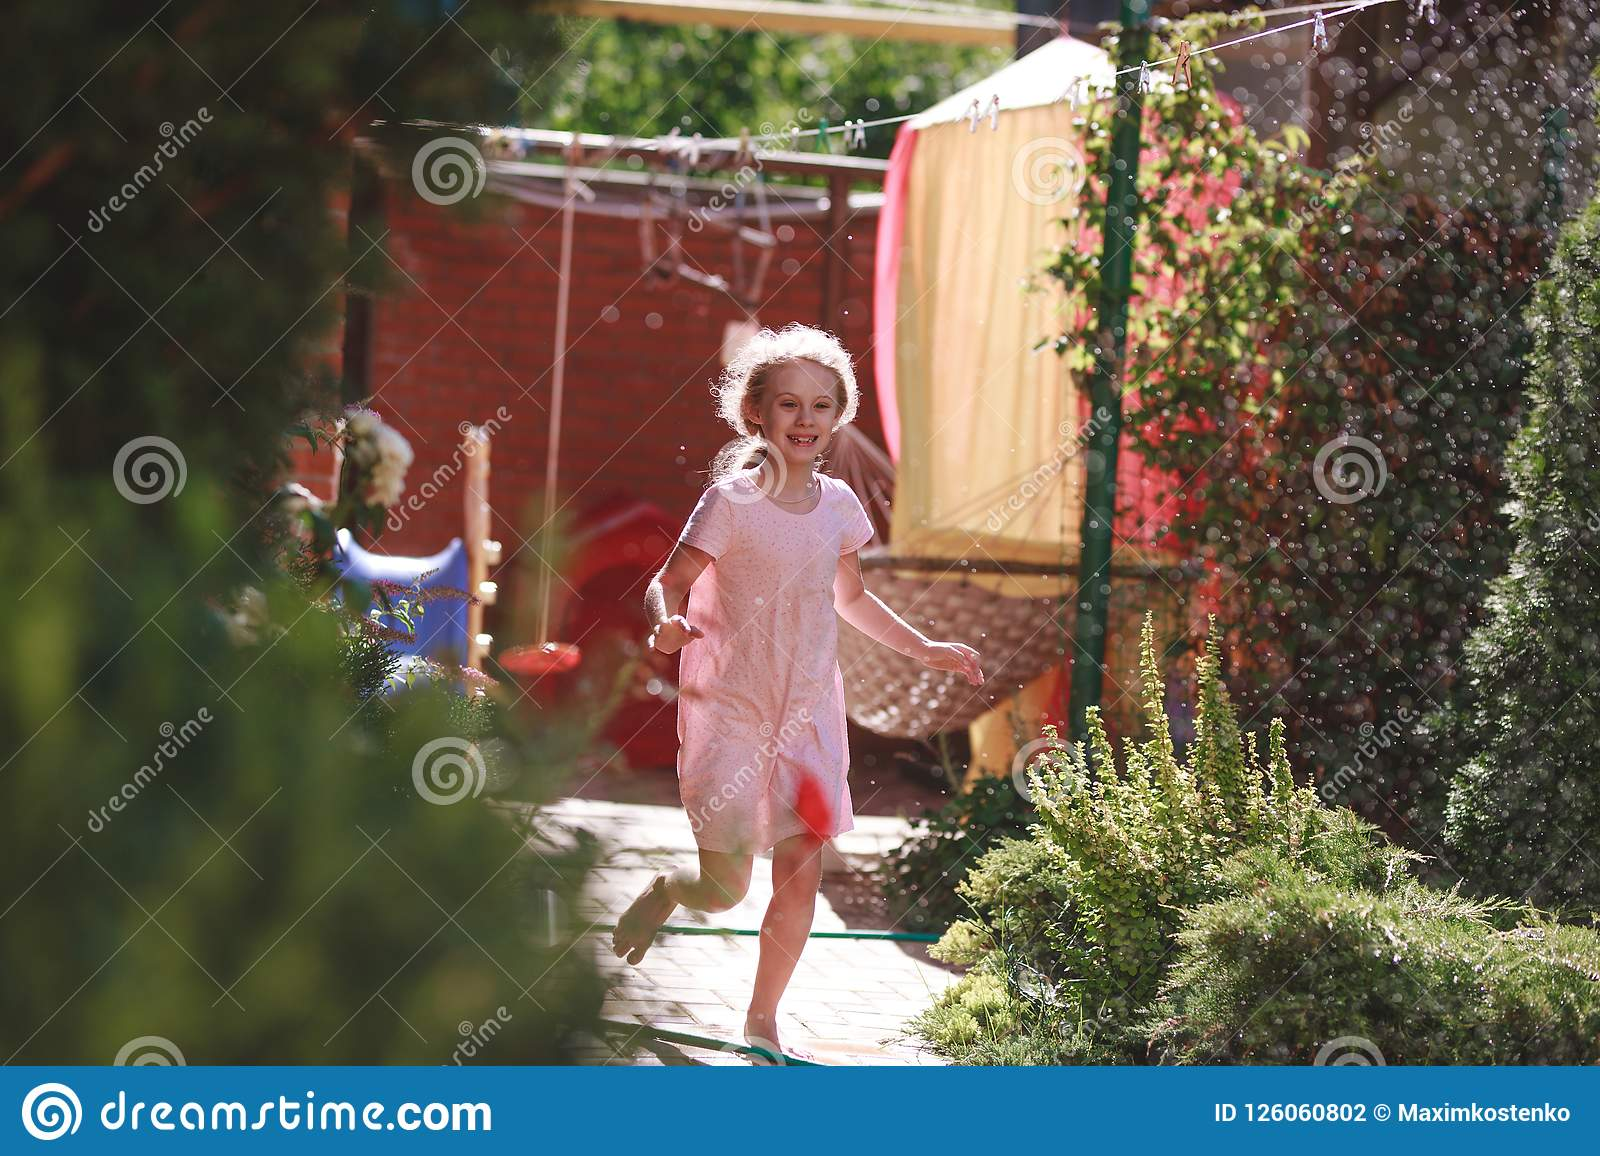 A cheerful charming seven-year-old girl enjoys a sunny summer morning and has fun in the garden at home